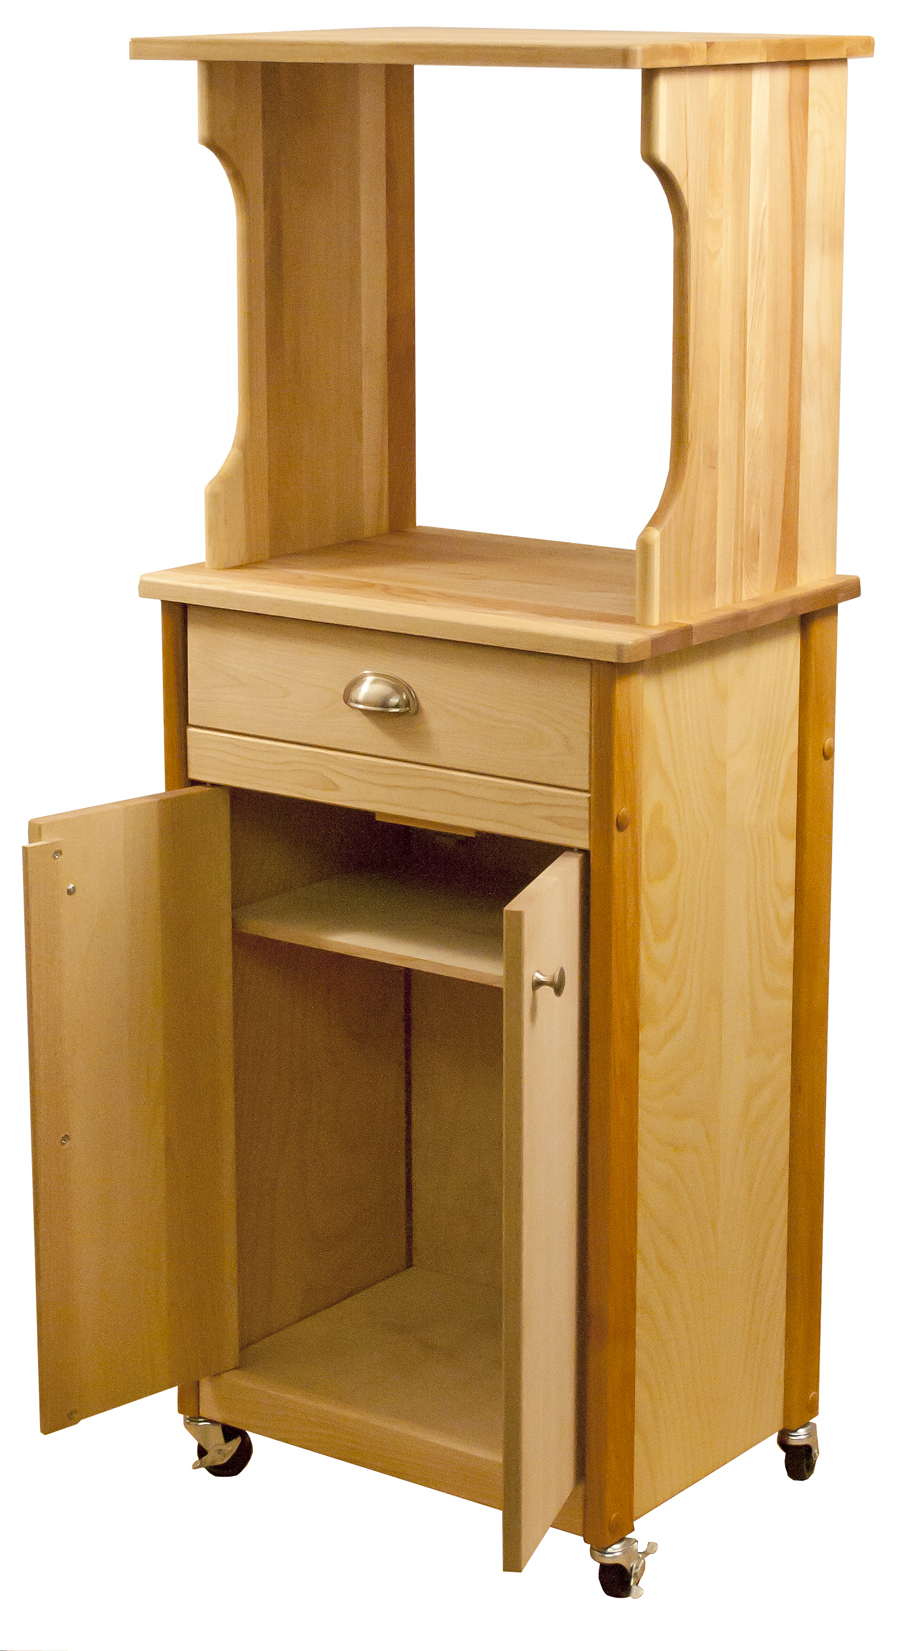 Kitchen Cart With Microwave Shelf Butcher Block Top